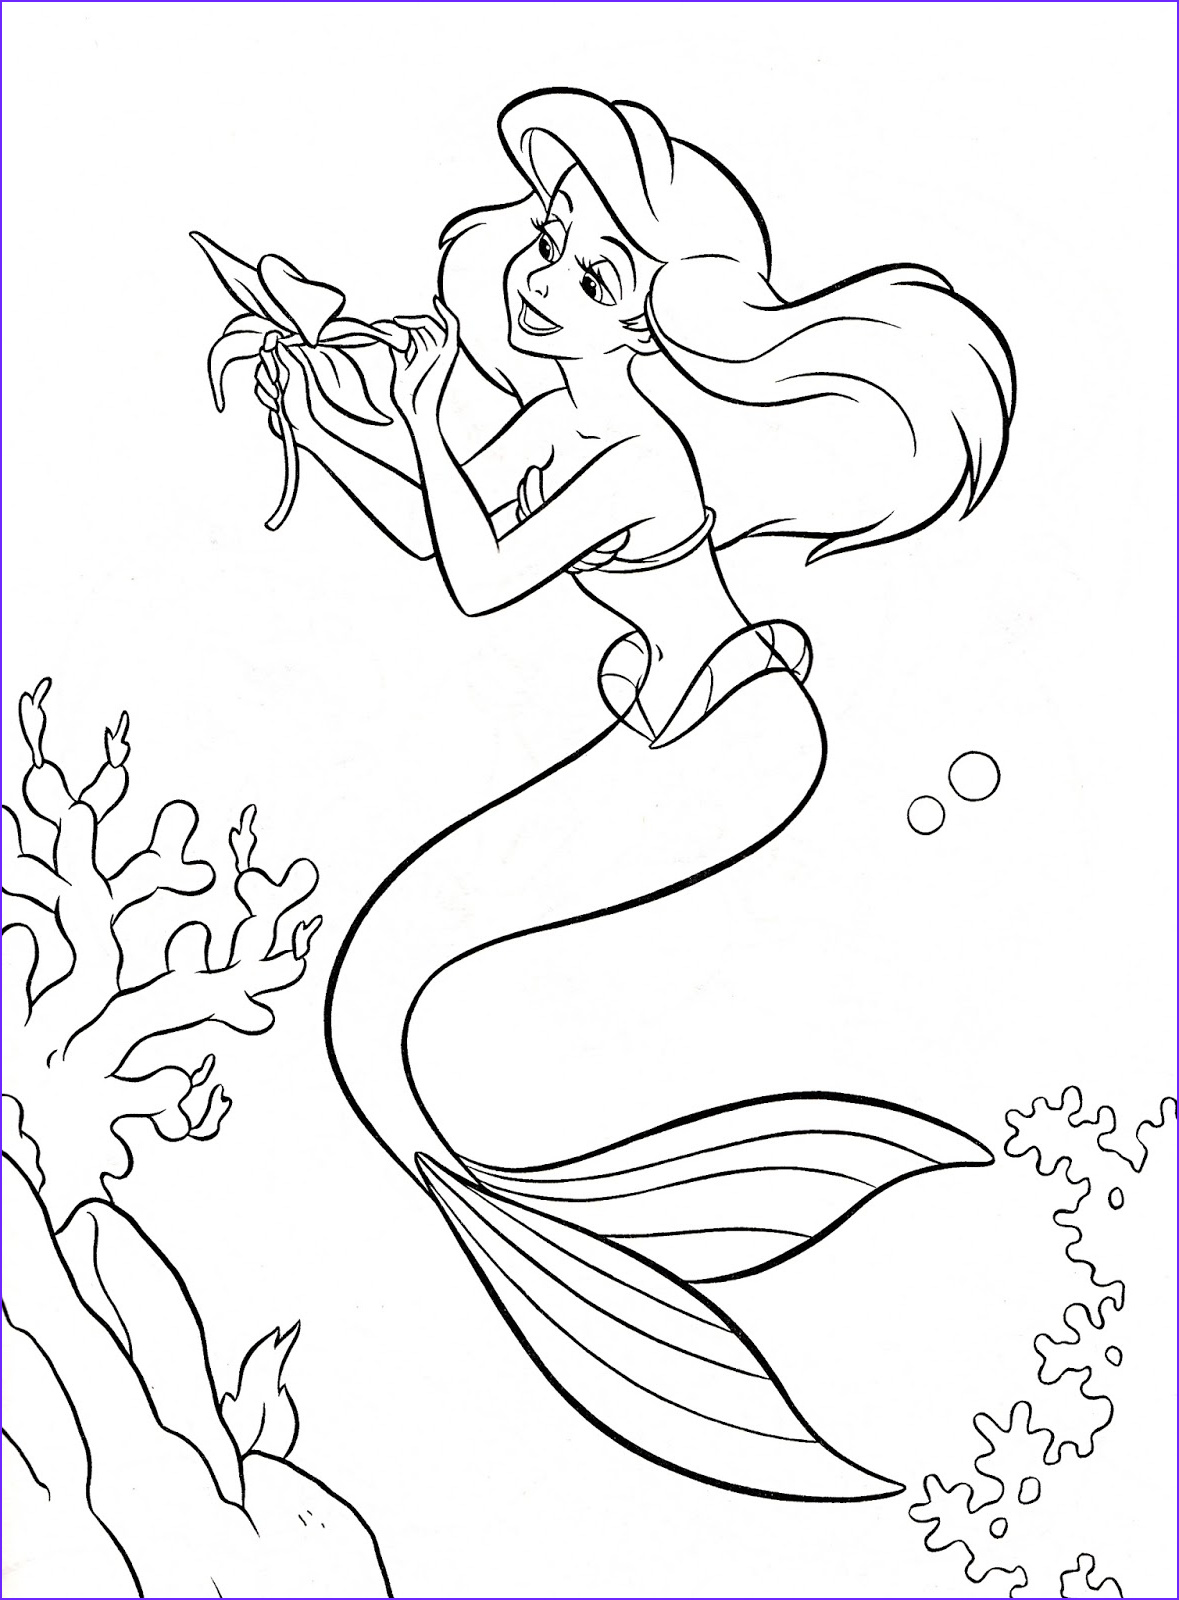 the little mermaid disney coloring page